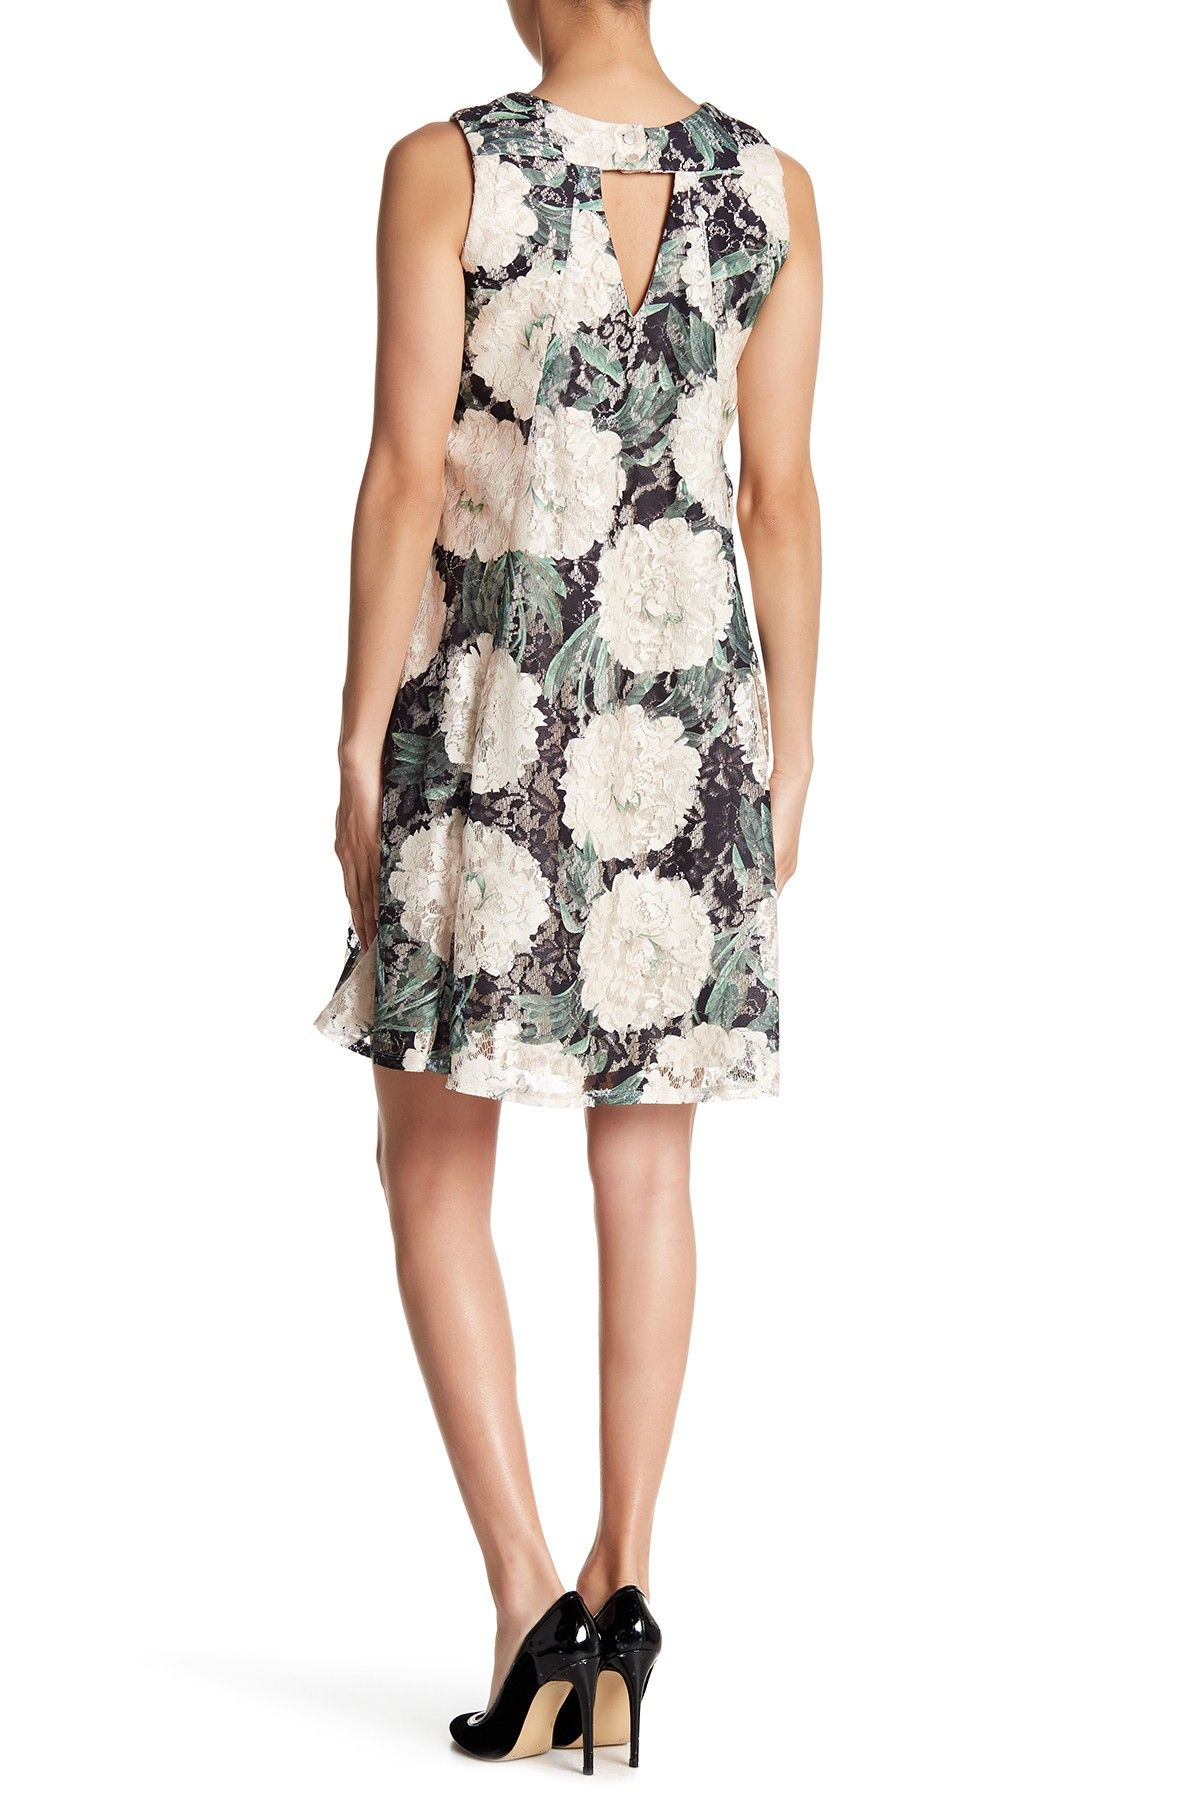 Gabby Skye Floral Printed Lace Trapeze Dress I Like This